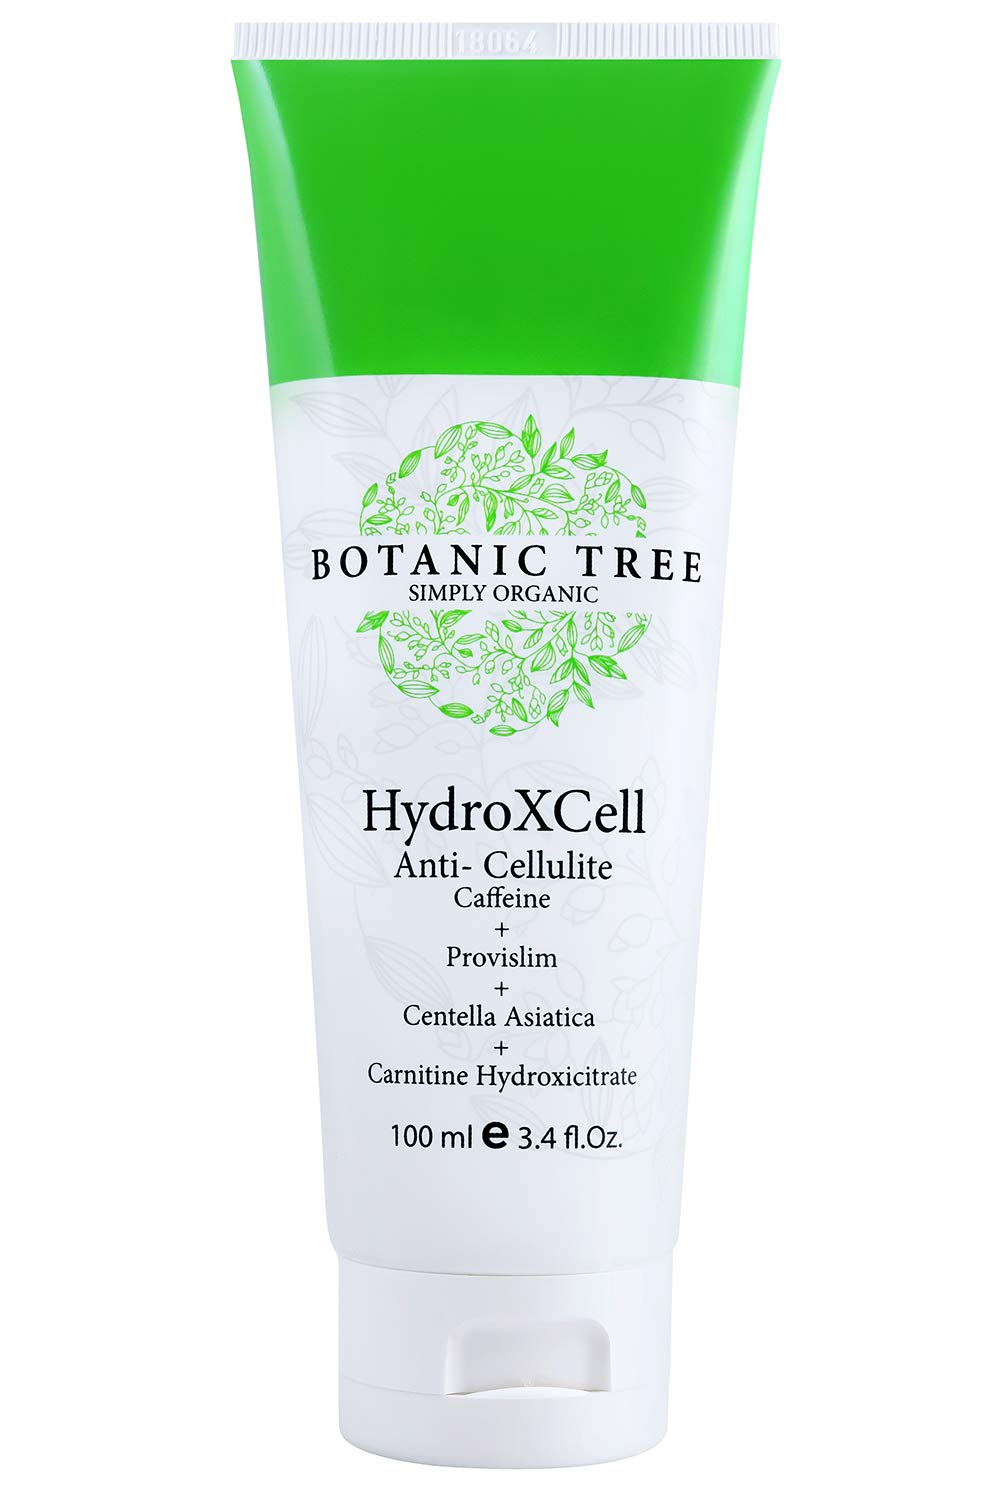 HydroXCell Anti Cellulite Cream Botanic Tree-Decrease Cellulite in 92% of Customers After 2 Months-Proven Results-100% Organic Extract-Cellulite Cream Remover w/Caffeine,Centella Asiatica,and Gingko. by Botanic Tree